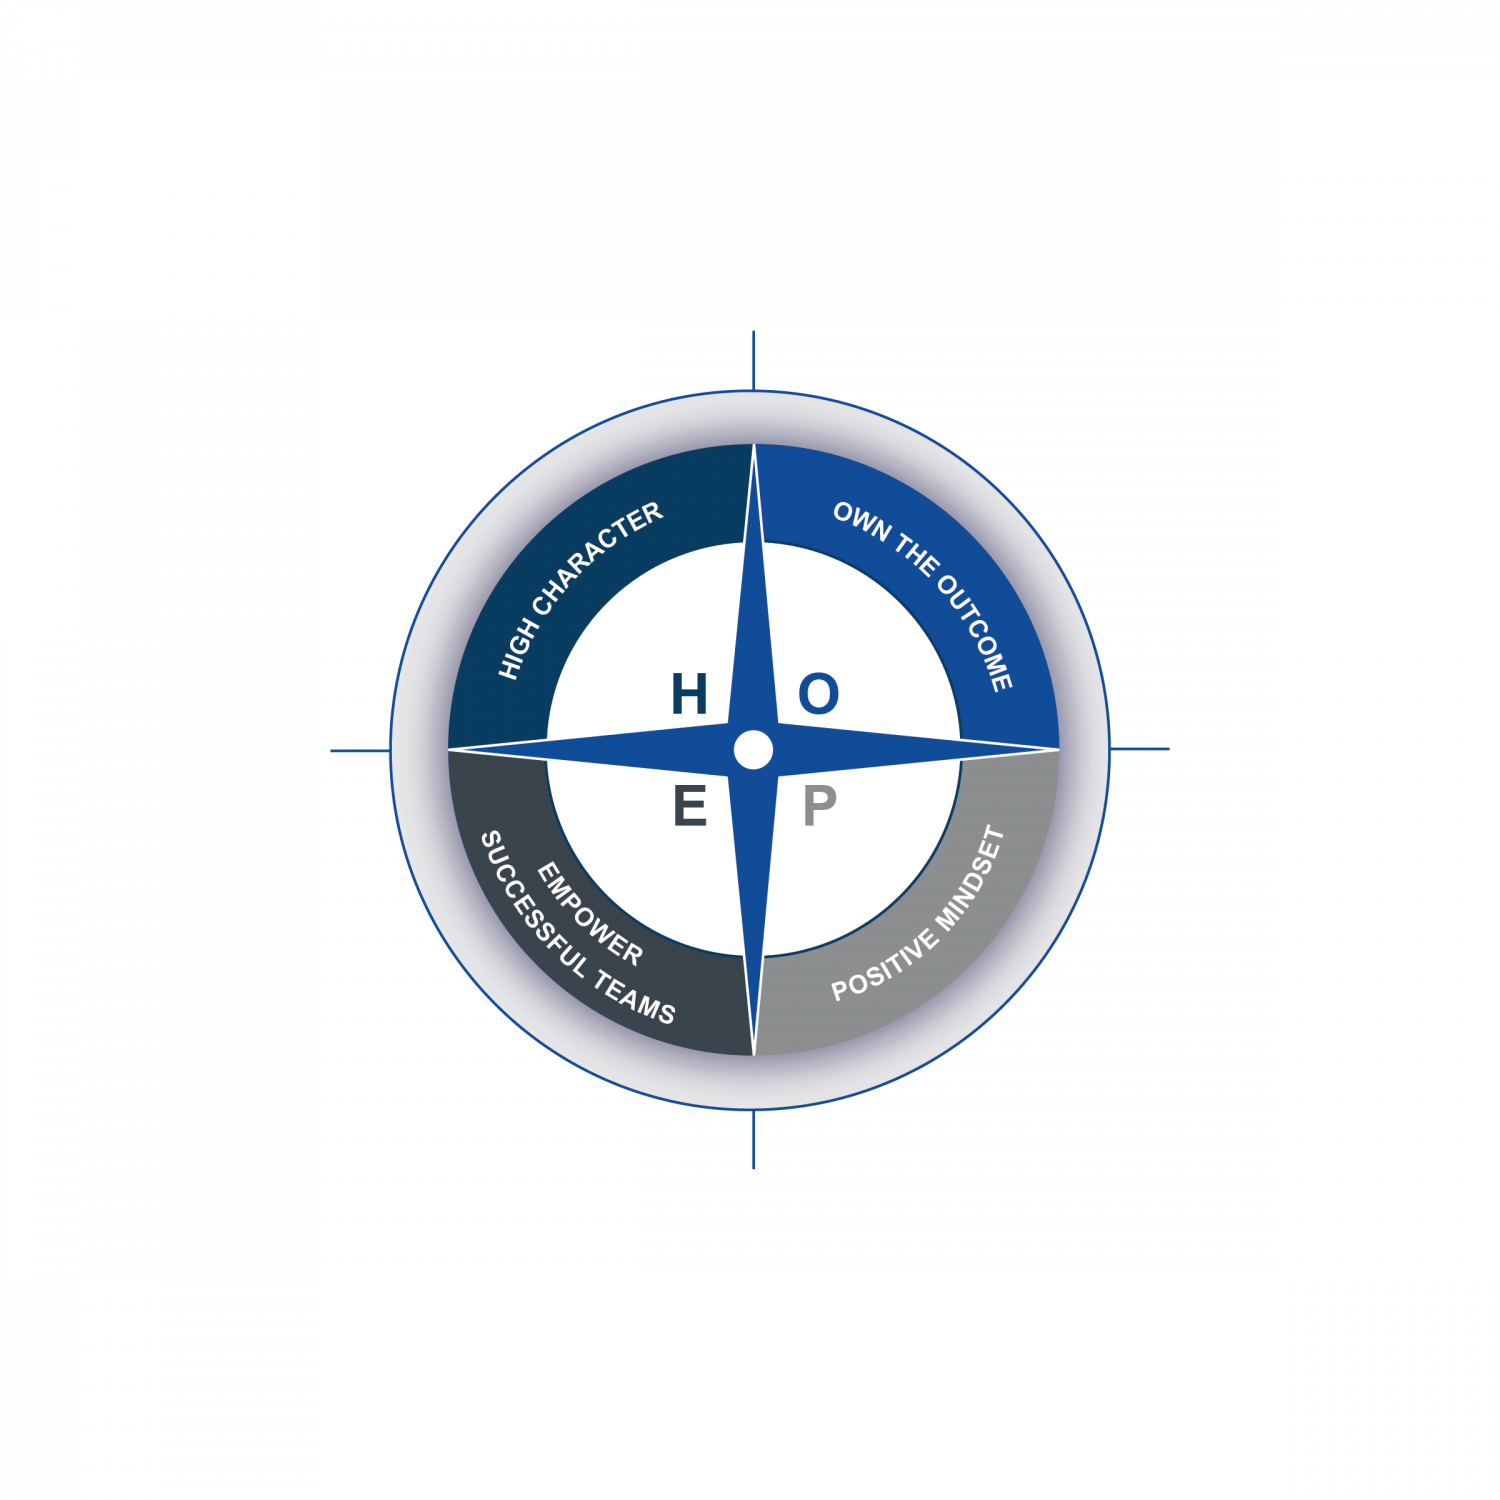 EAD Corporate Compass Hope Message